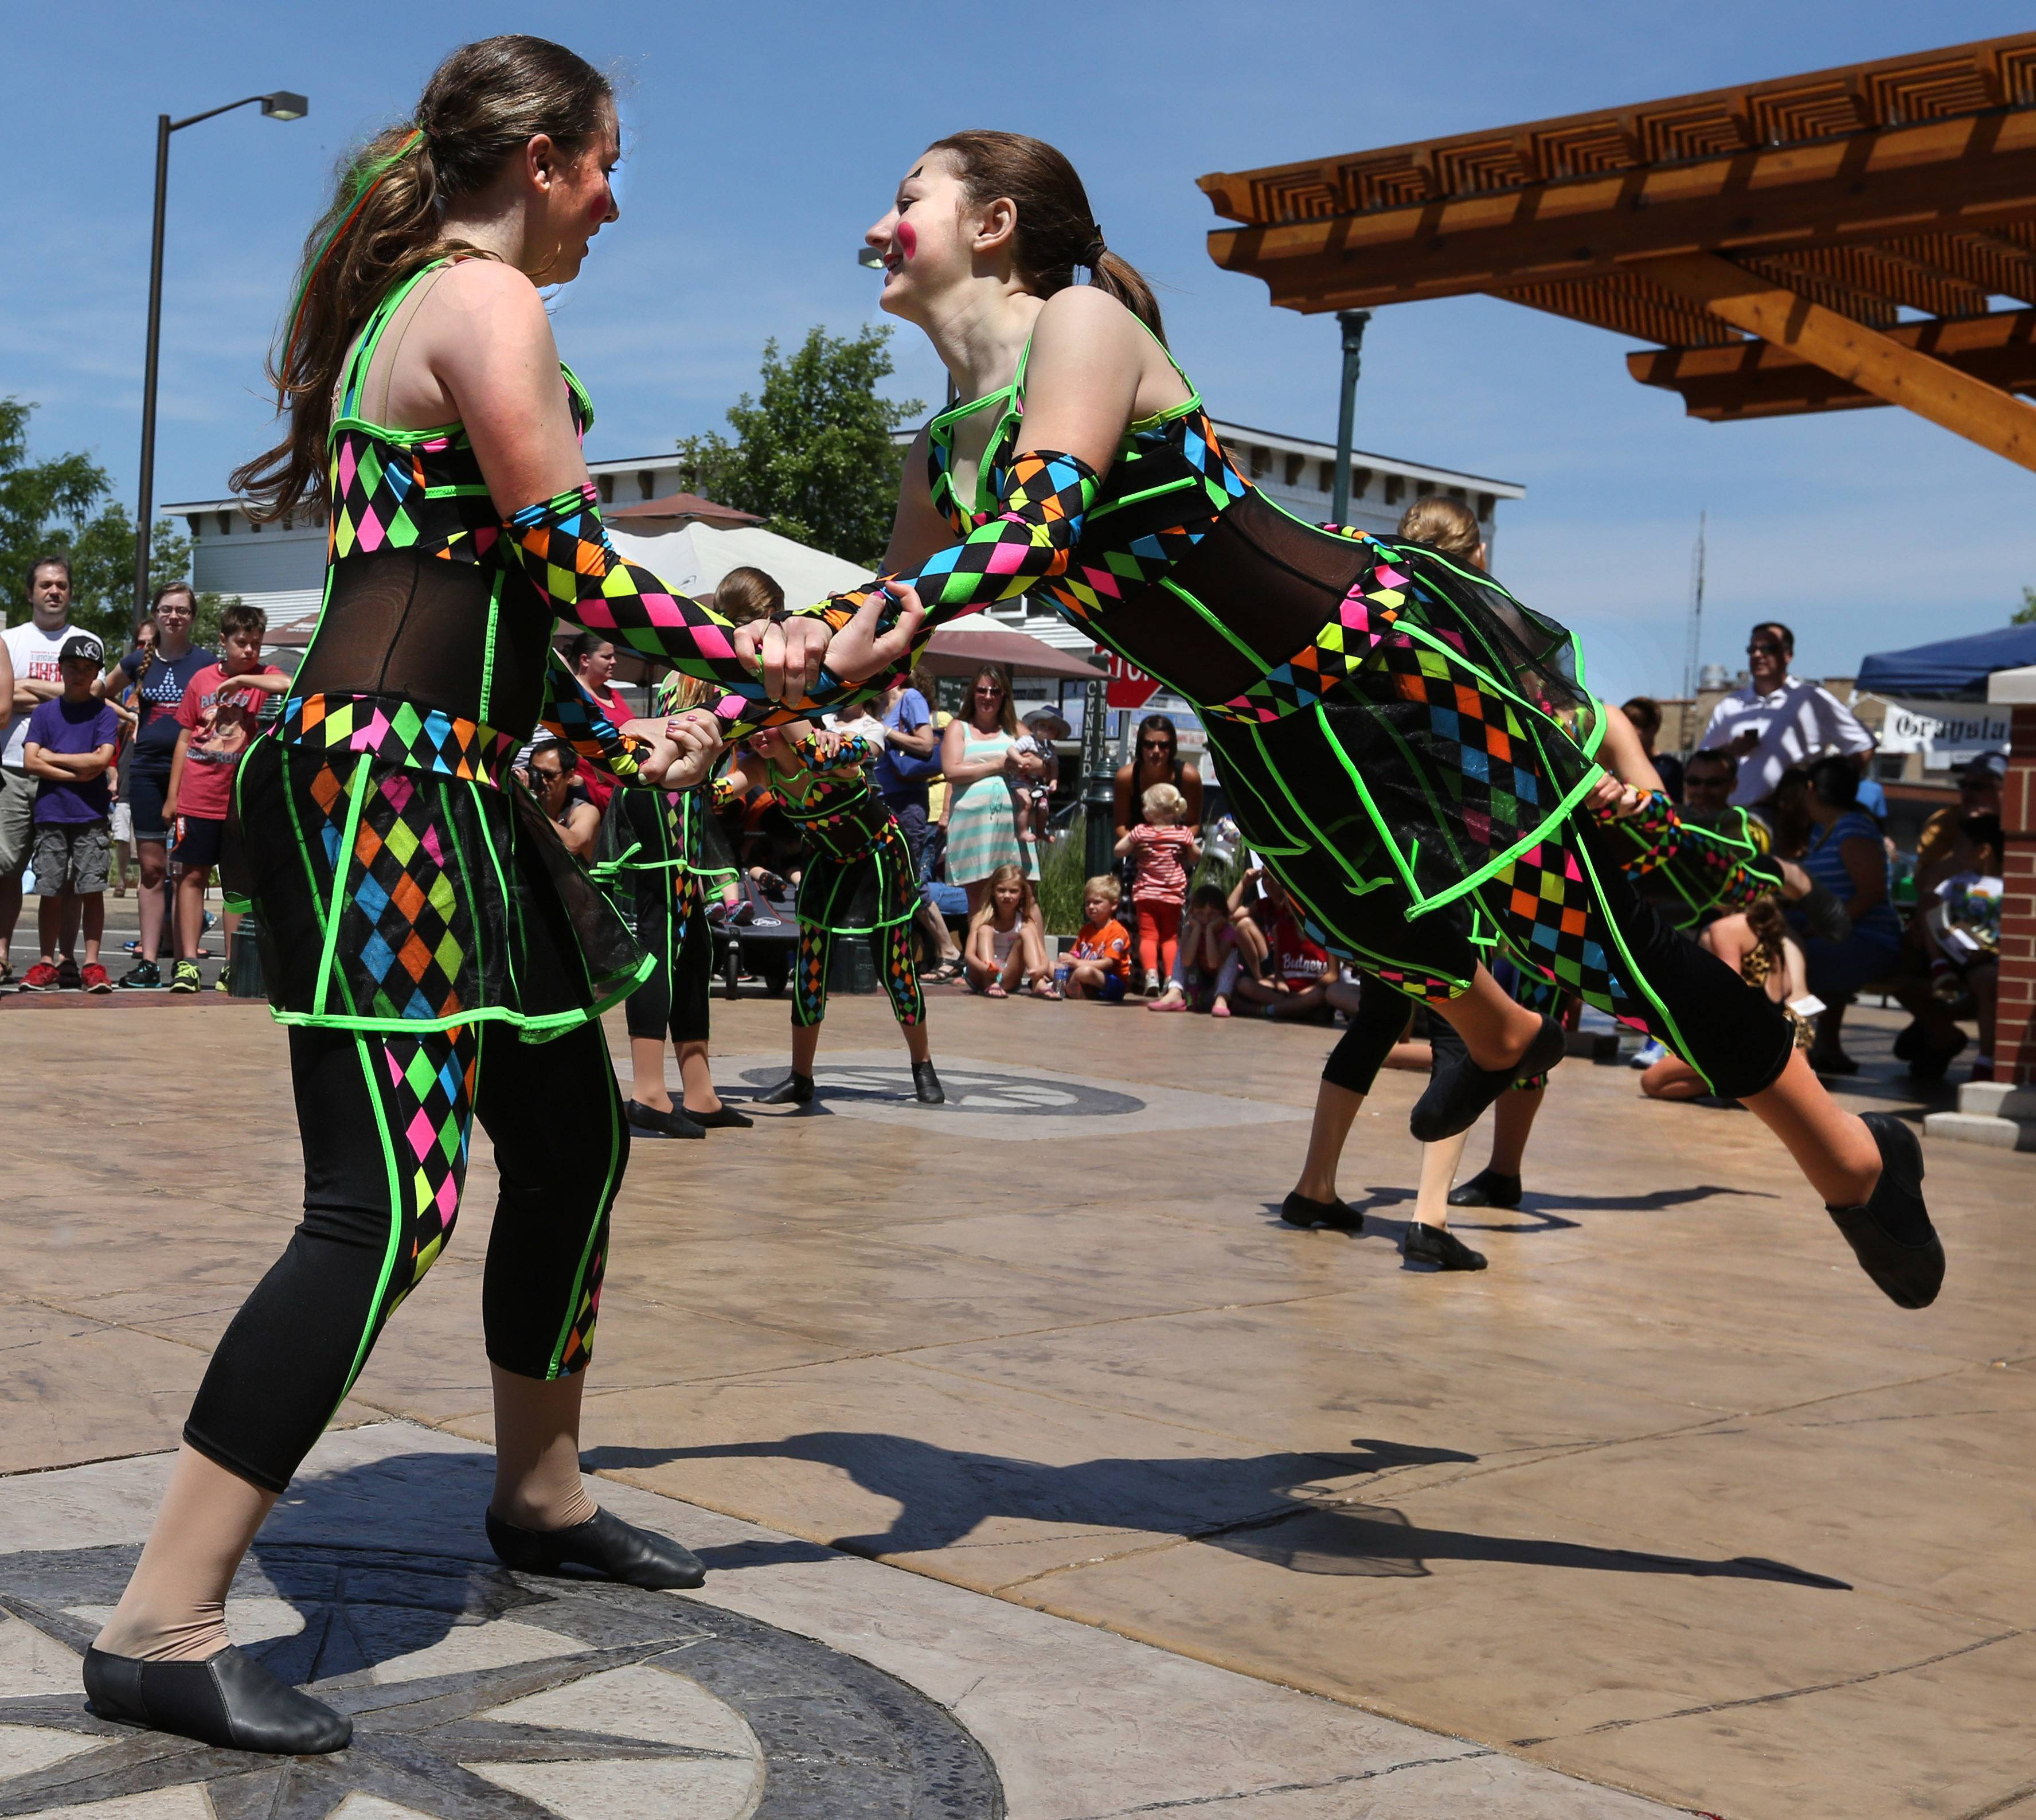 Samantha Steffen swings Samantha Smith while dancing to pop and rock music as they preform with Dance Connection in Grayslake at the 19th annual Grayslake Arts Festival on Saturday.